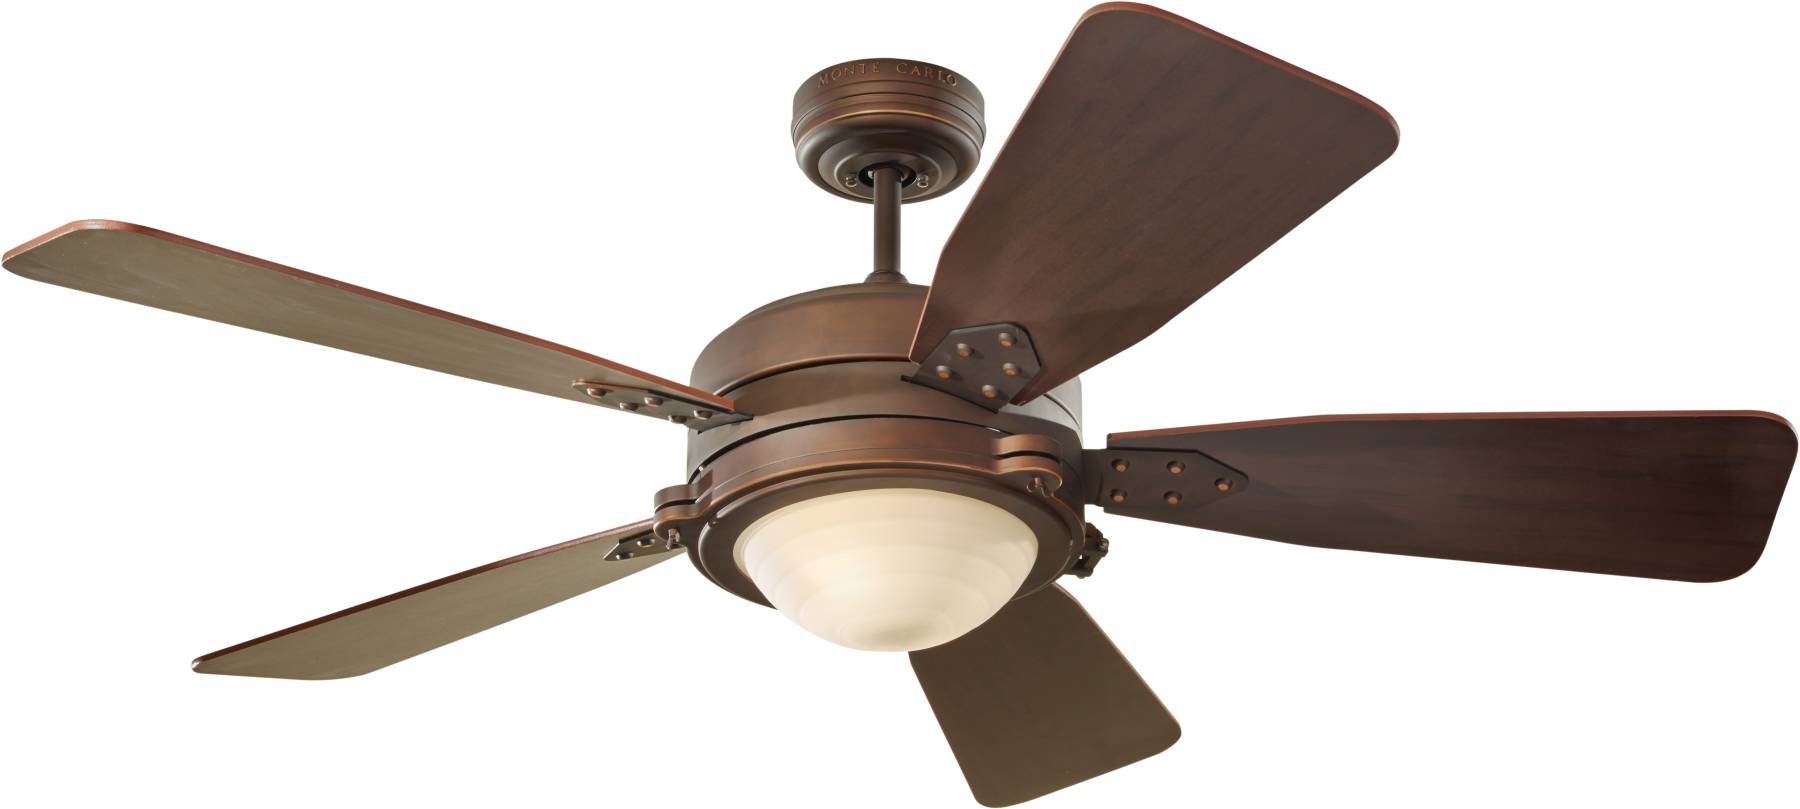 for indoor three blades ceiling fan operated battery powered black homesfeed by